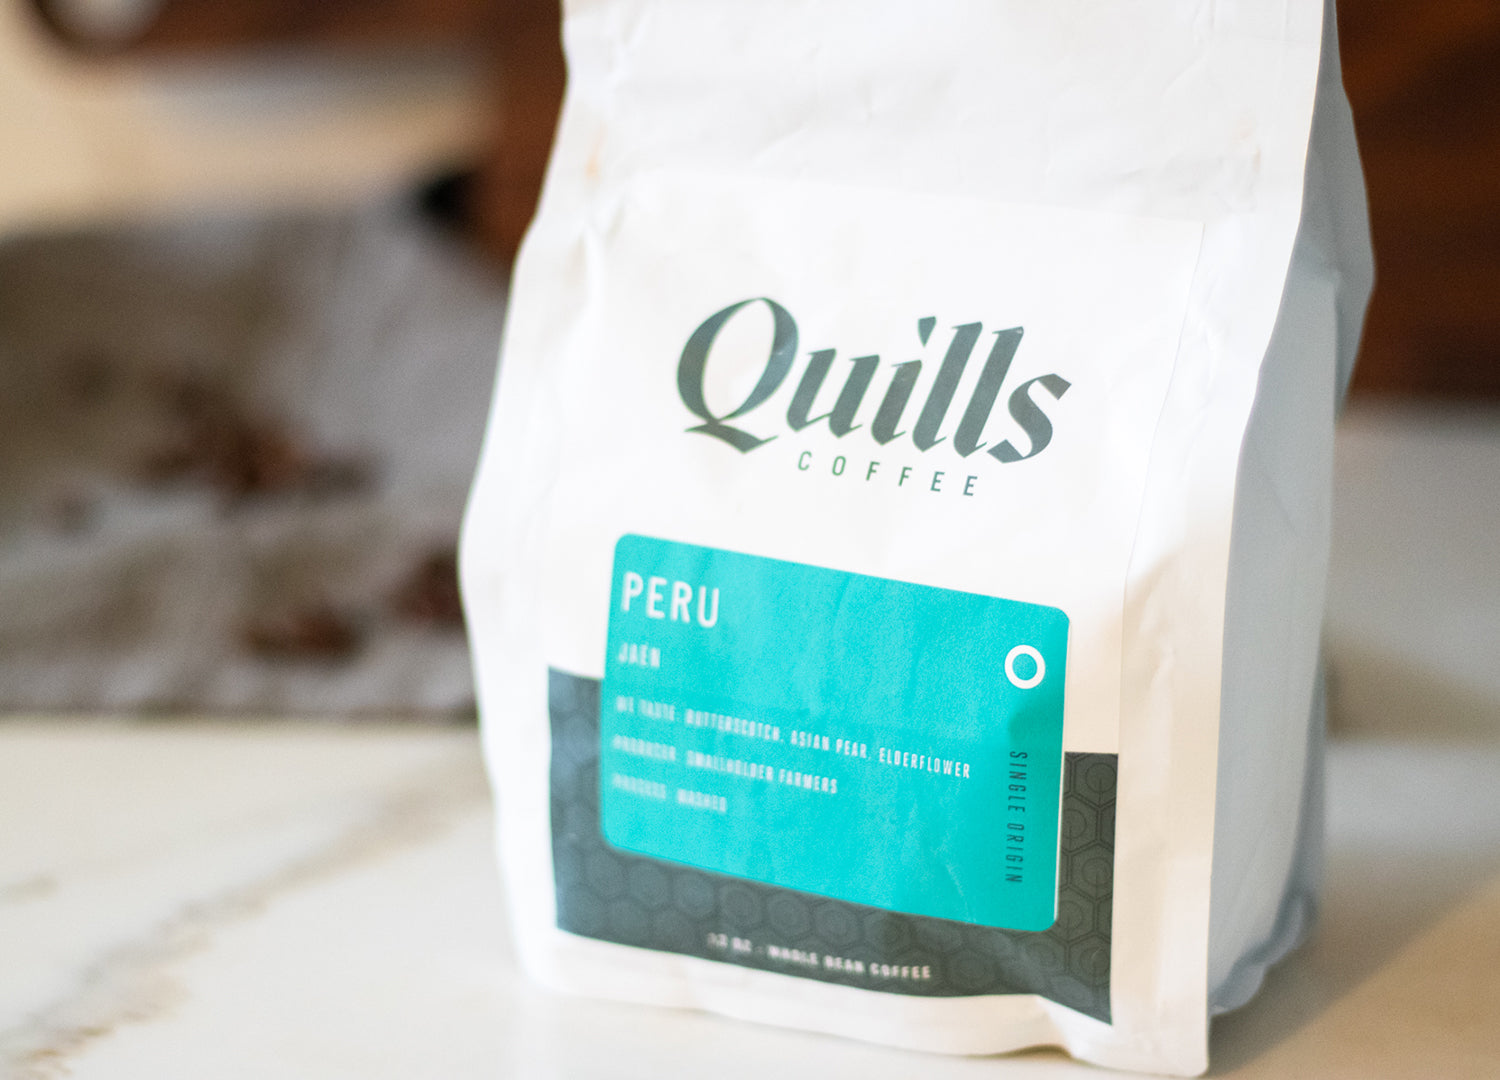 Quills Peru coffee bean bag resting on a counter ready to be ground